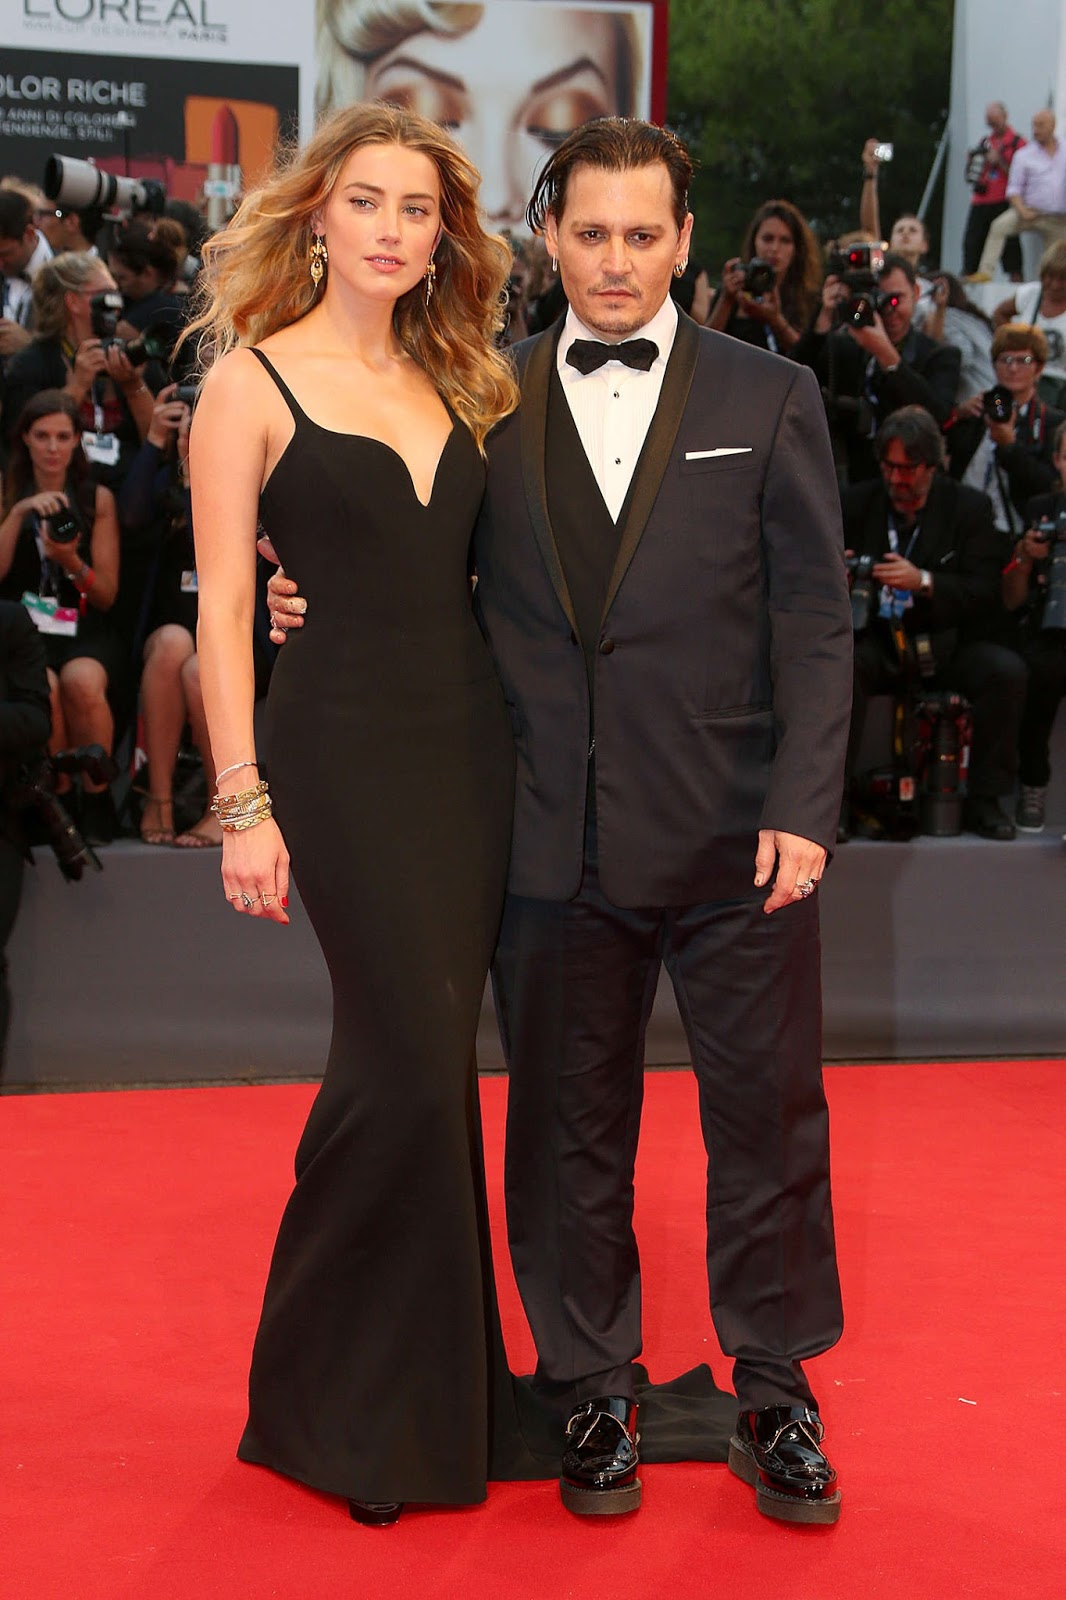 Amber Heard And Johnny Depp Are Stunning At The Black